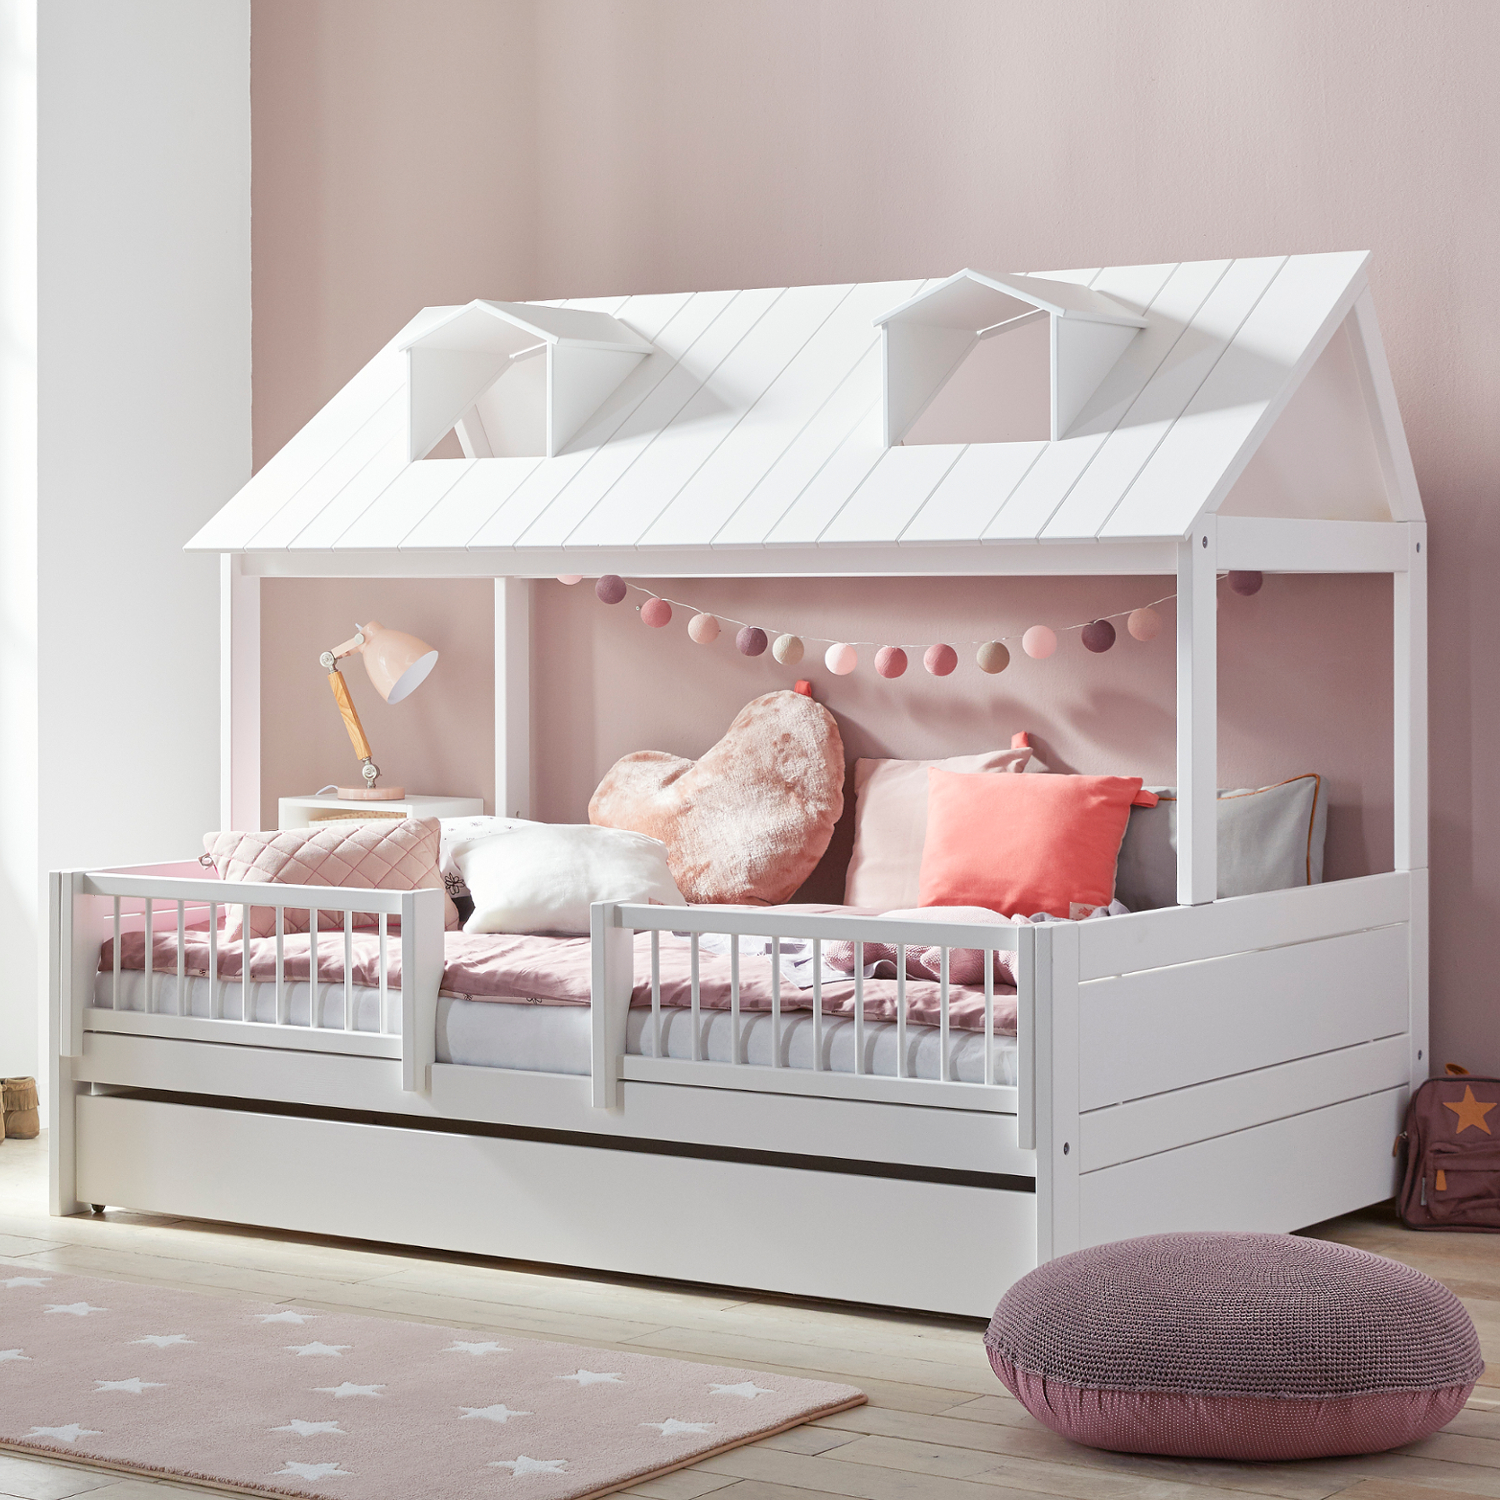 beach house kinderbett spielbett von lifetime massivholz wei hausbett in 3 gr en. Black Bedroom Furniture Sets. Home Design Ideas